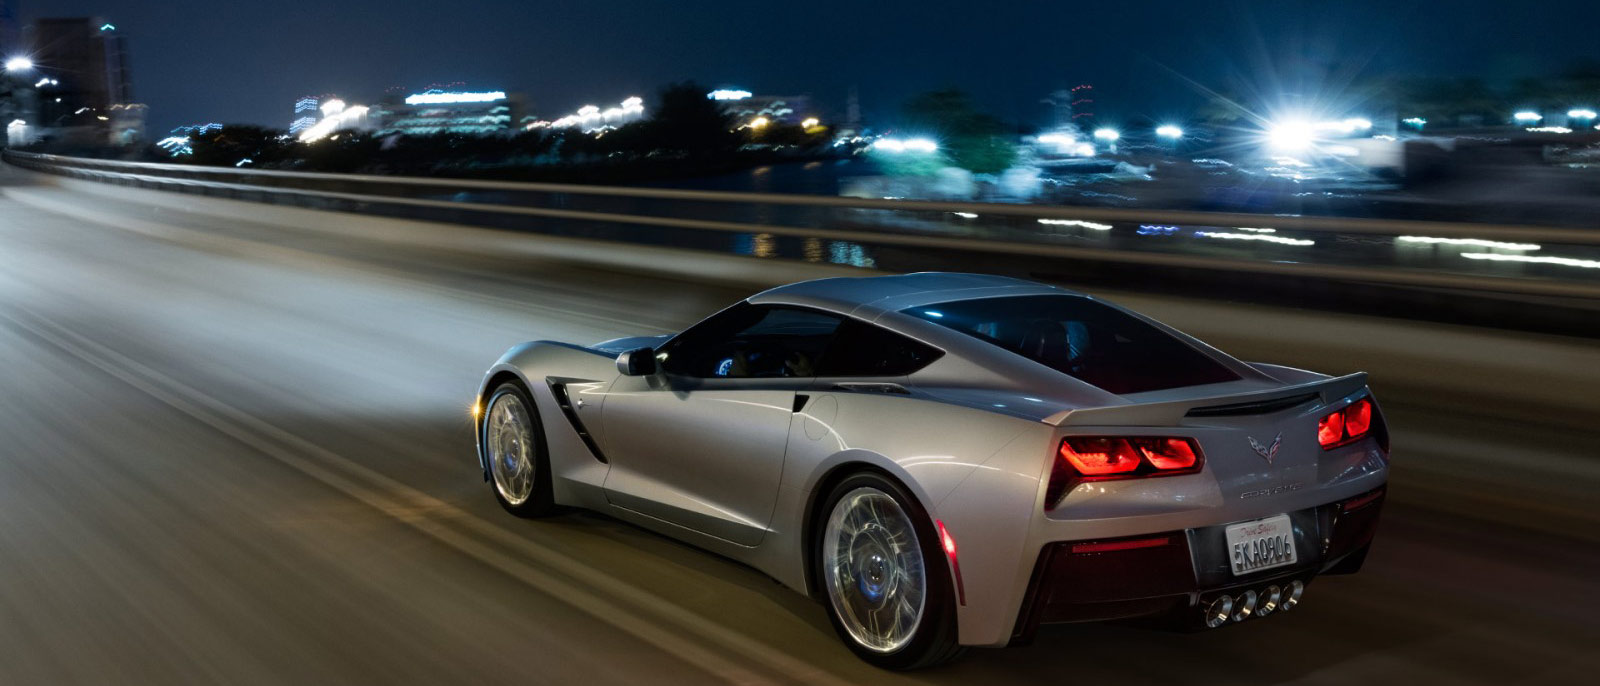 2016 Chevrolet Corvette Stingray Driving